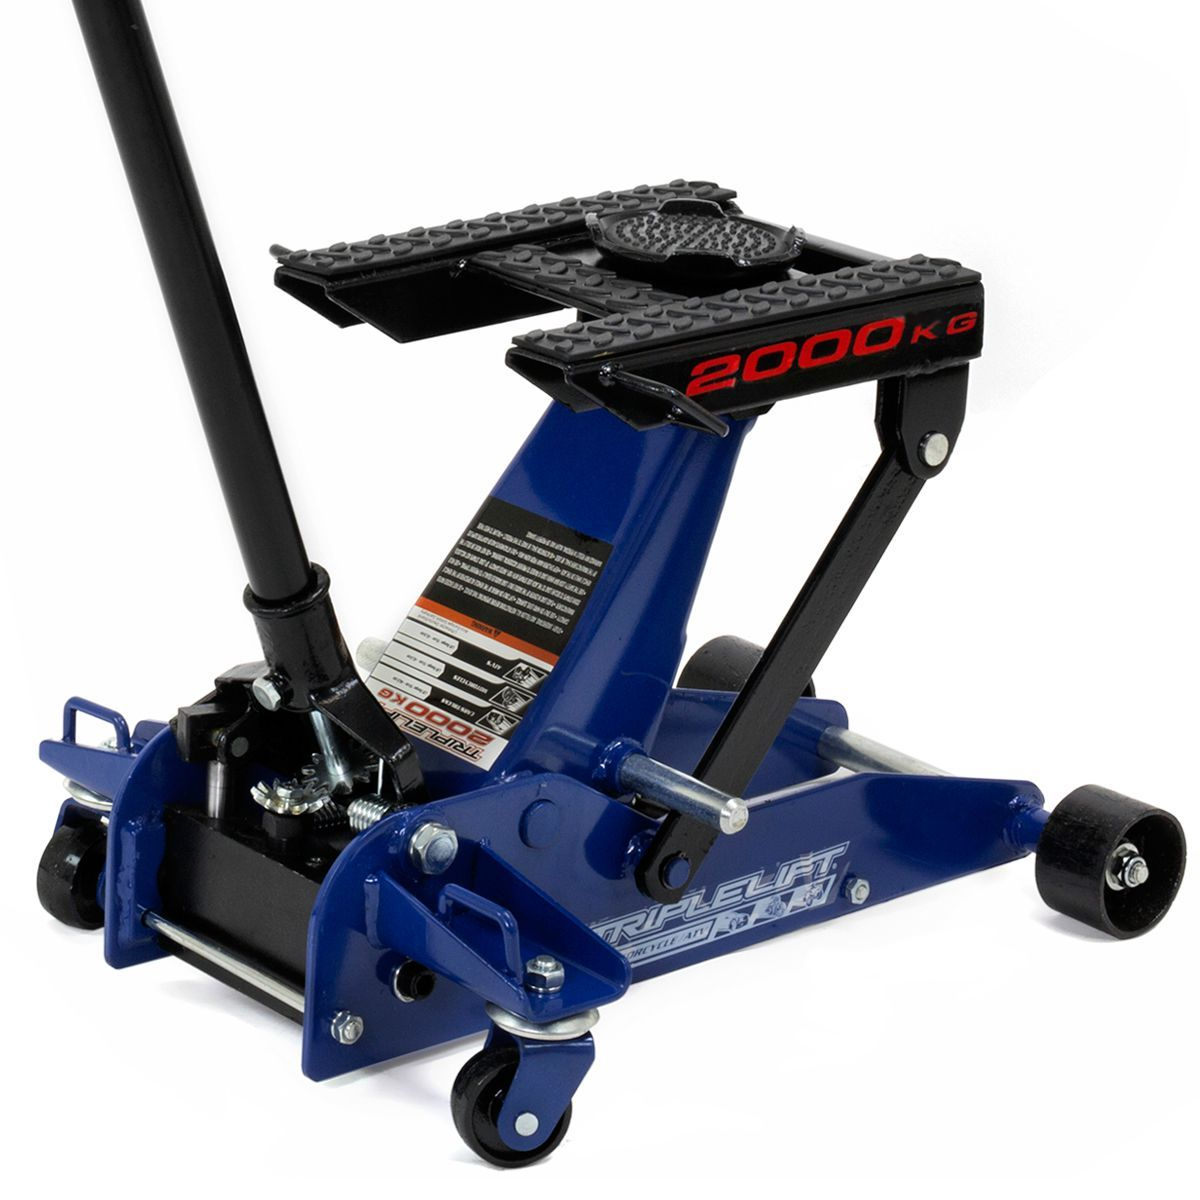 4,400LB Auto Triple Lift Hydraulic Floor Jack 2 ton